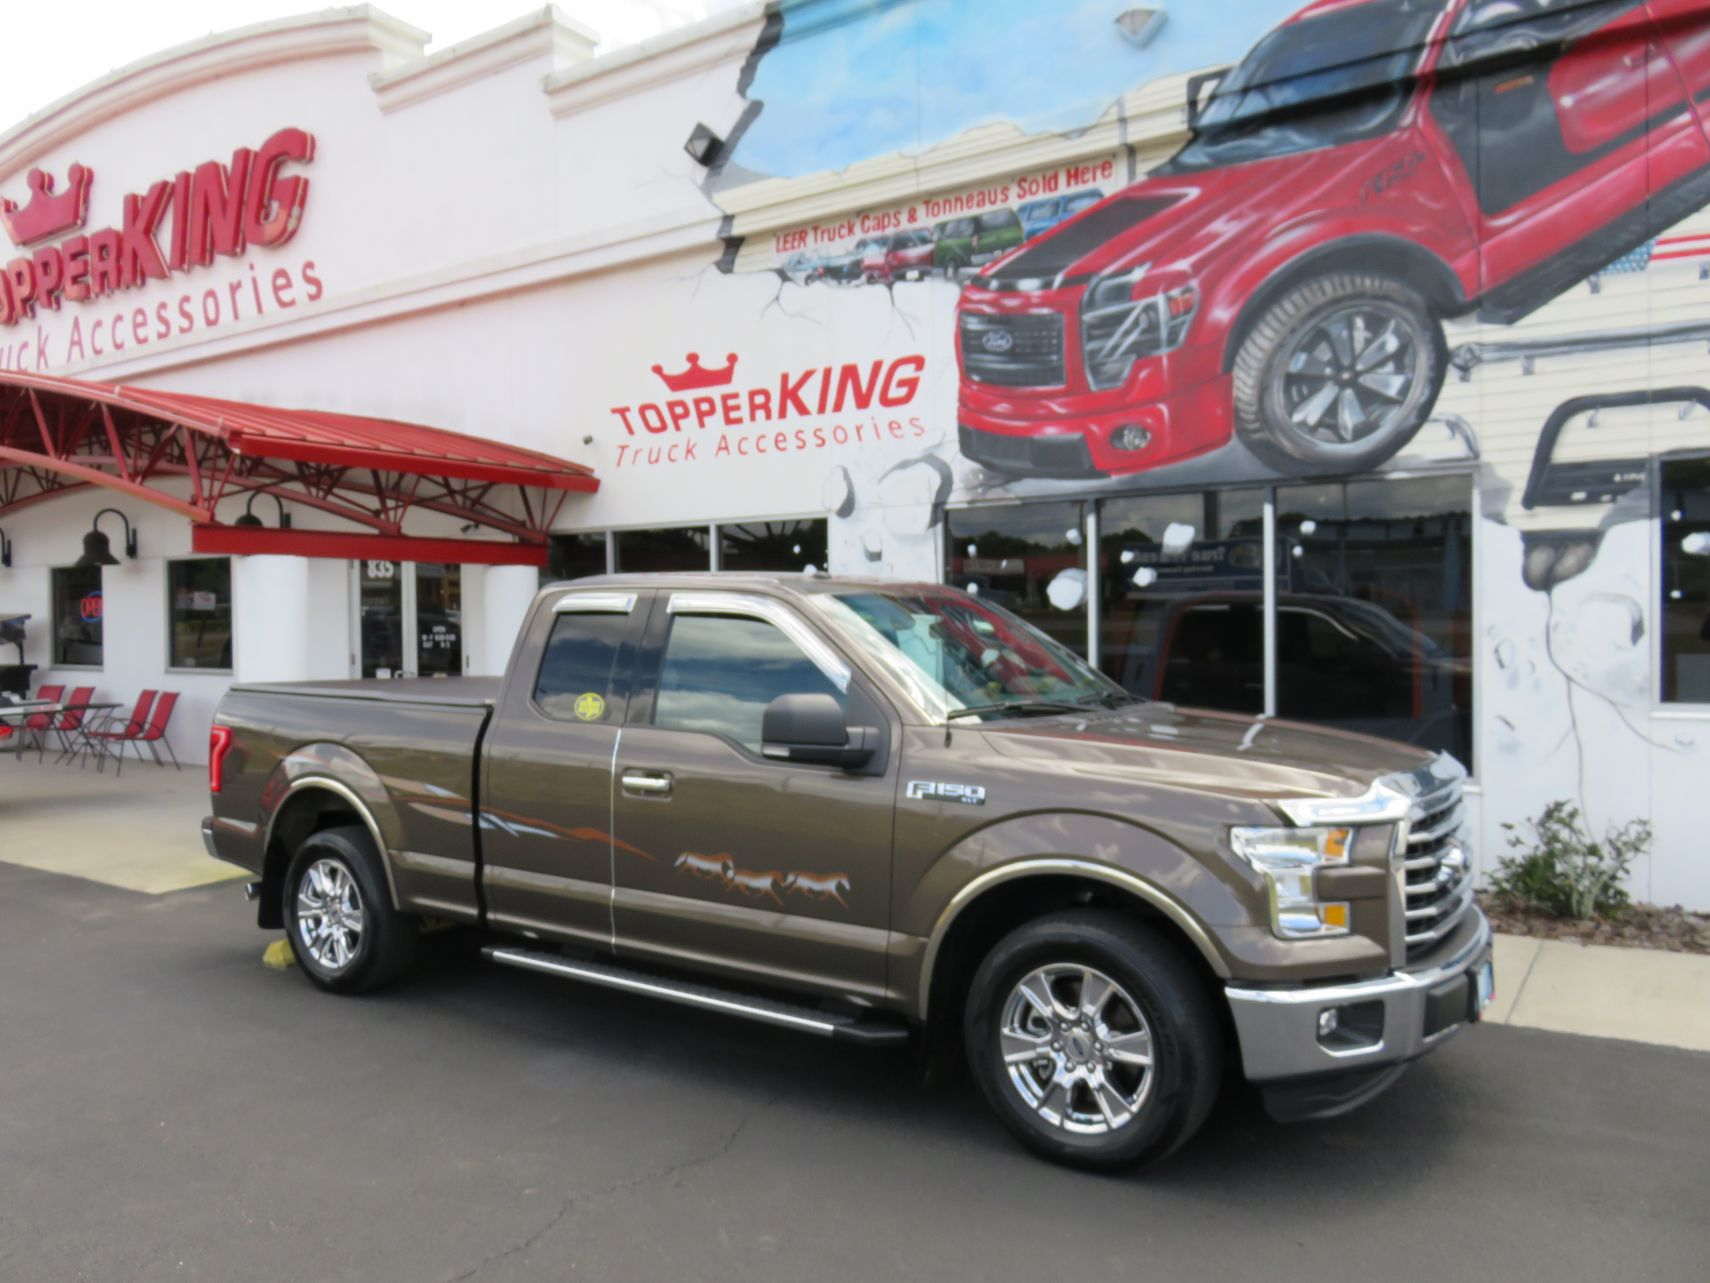 2016 Brown Ford F150 Chrome, Horse Graphic, Vent Visor, Tonneau Cover, Bug Guard by TopperKING in Brandon 813-689-2449 or Clearwater FL 727-530-9066. Call!